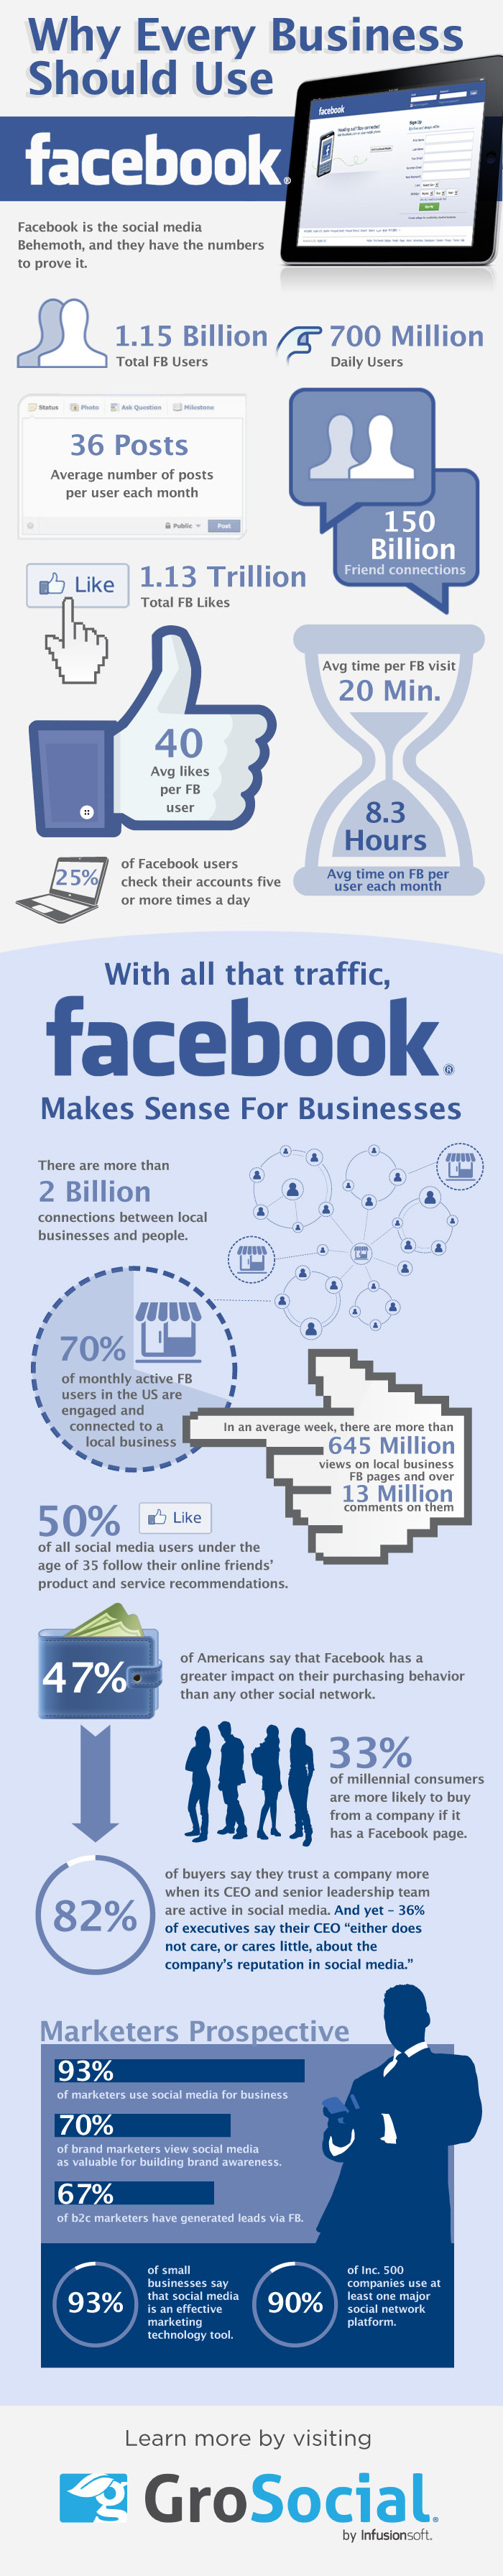 Why_Every_Company_Should_Use_FB_Grosocial